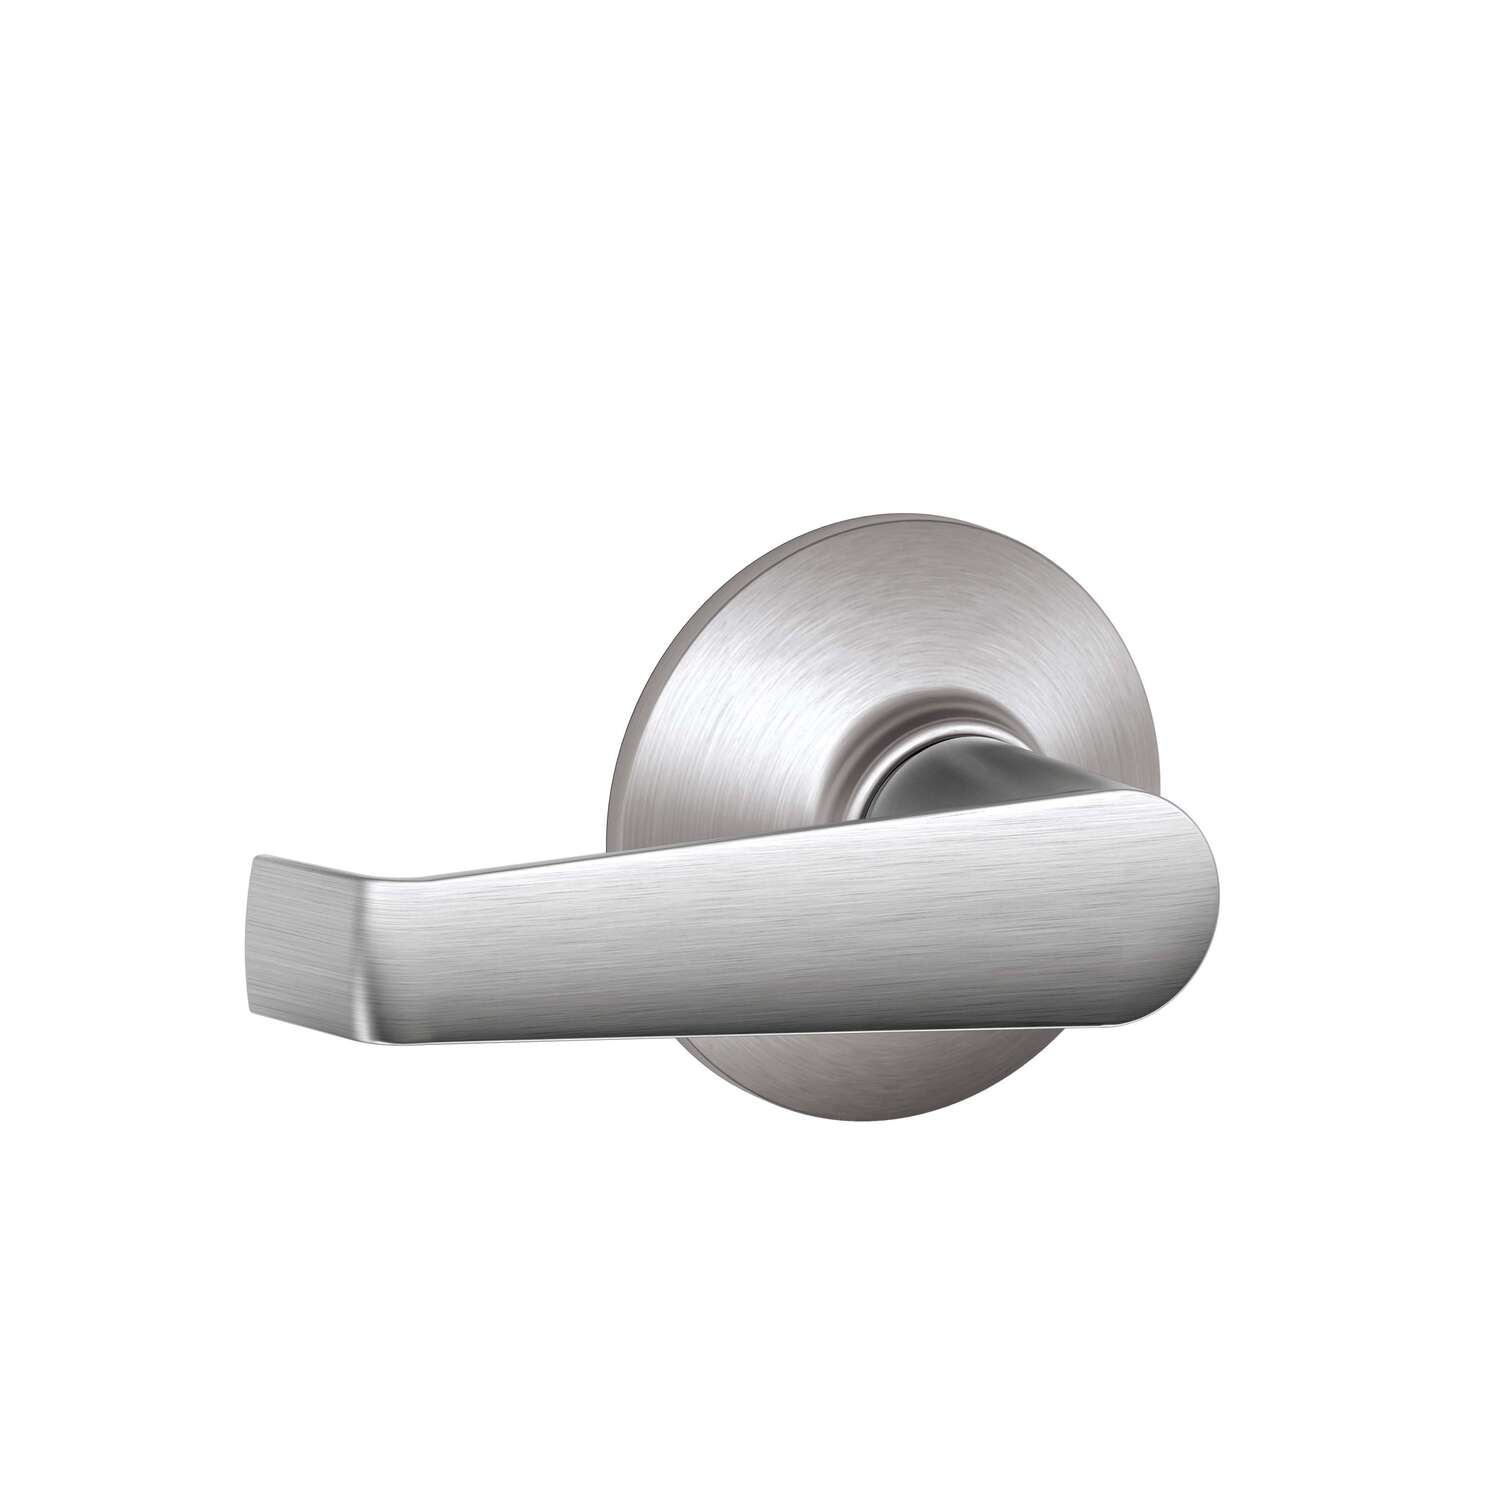 Schlage Elan Satin Chrome Passage Lockset ANSI Grade 2 1-3/4 in.